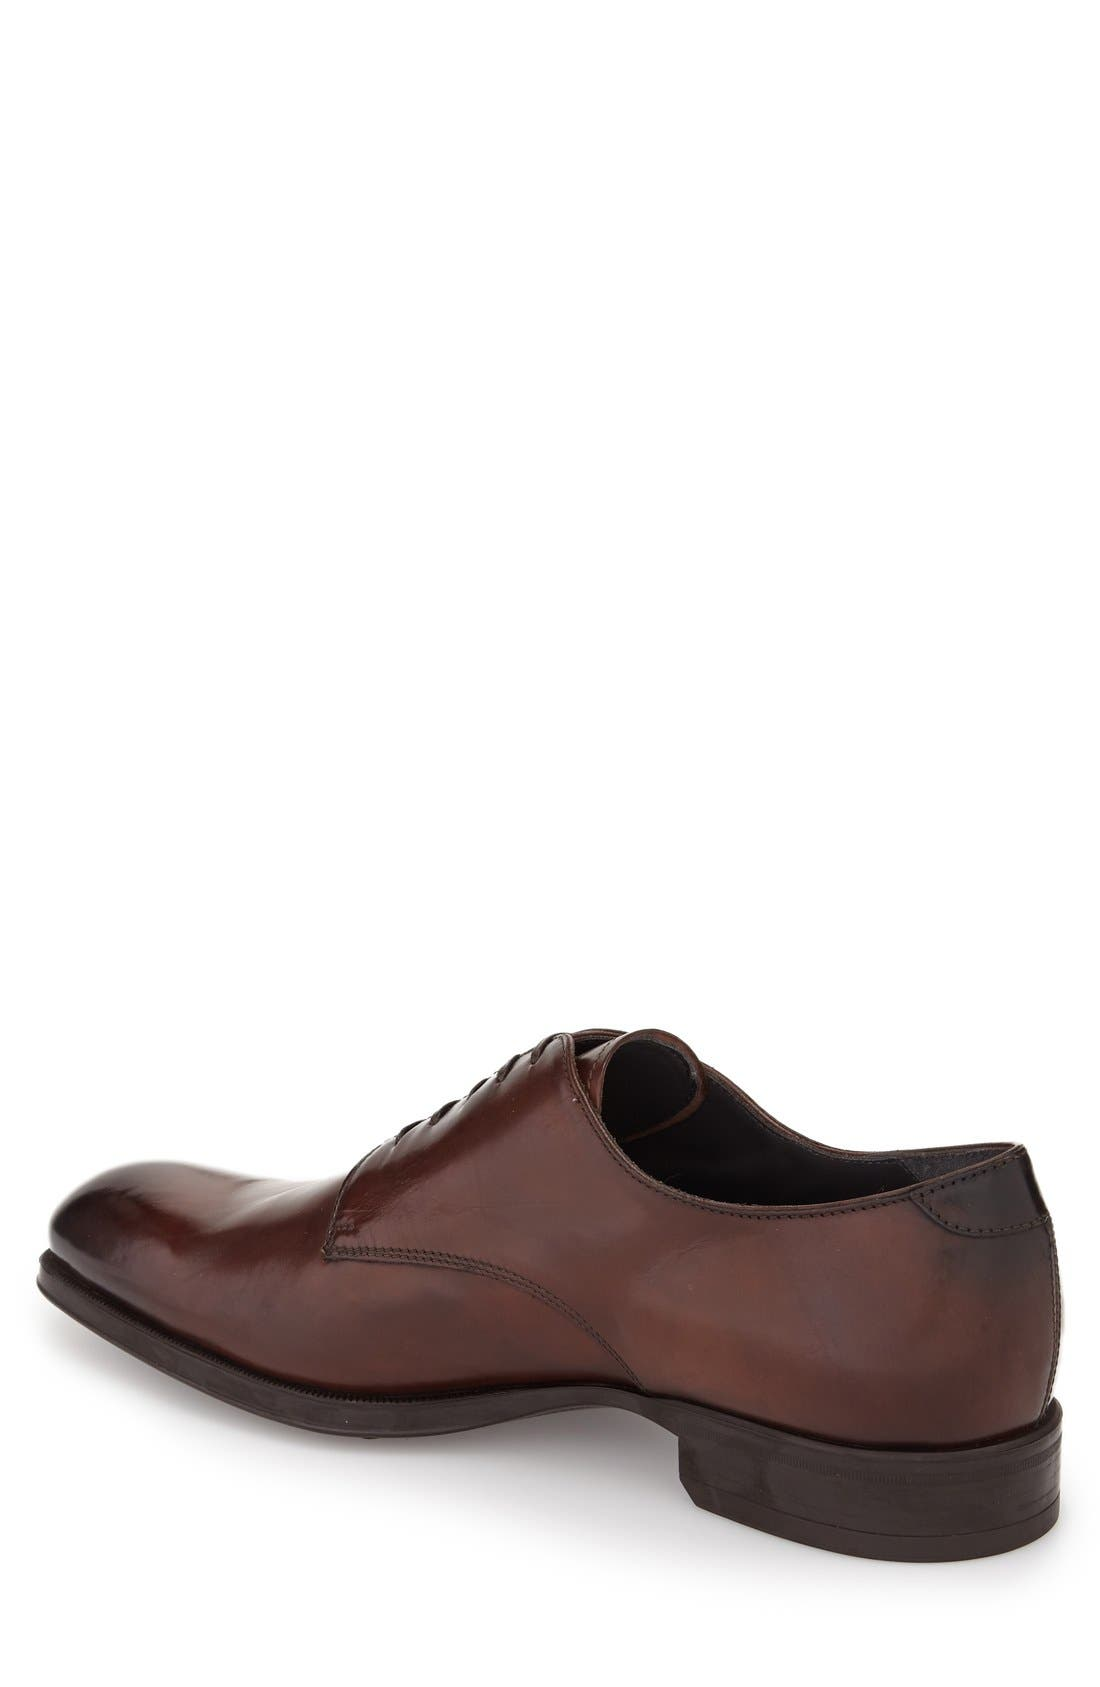 Alternate Image 2  - To Boot New York 'Buchanan' Plain Toe Derby (Men)